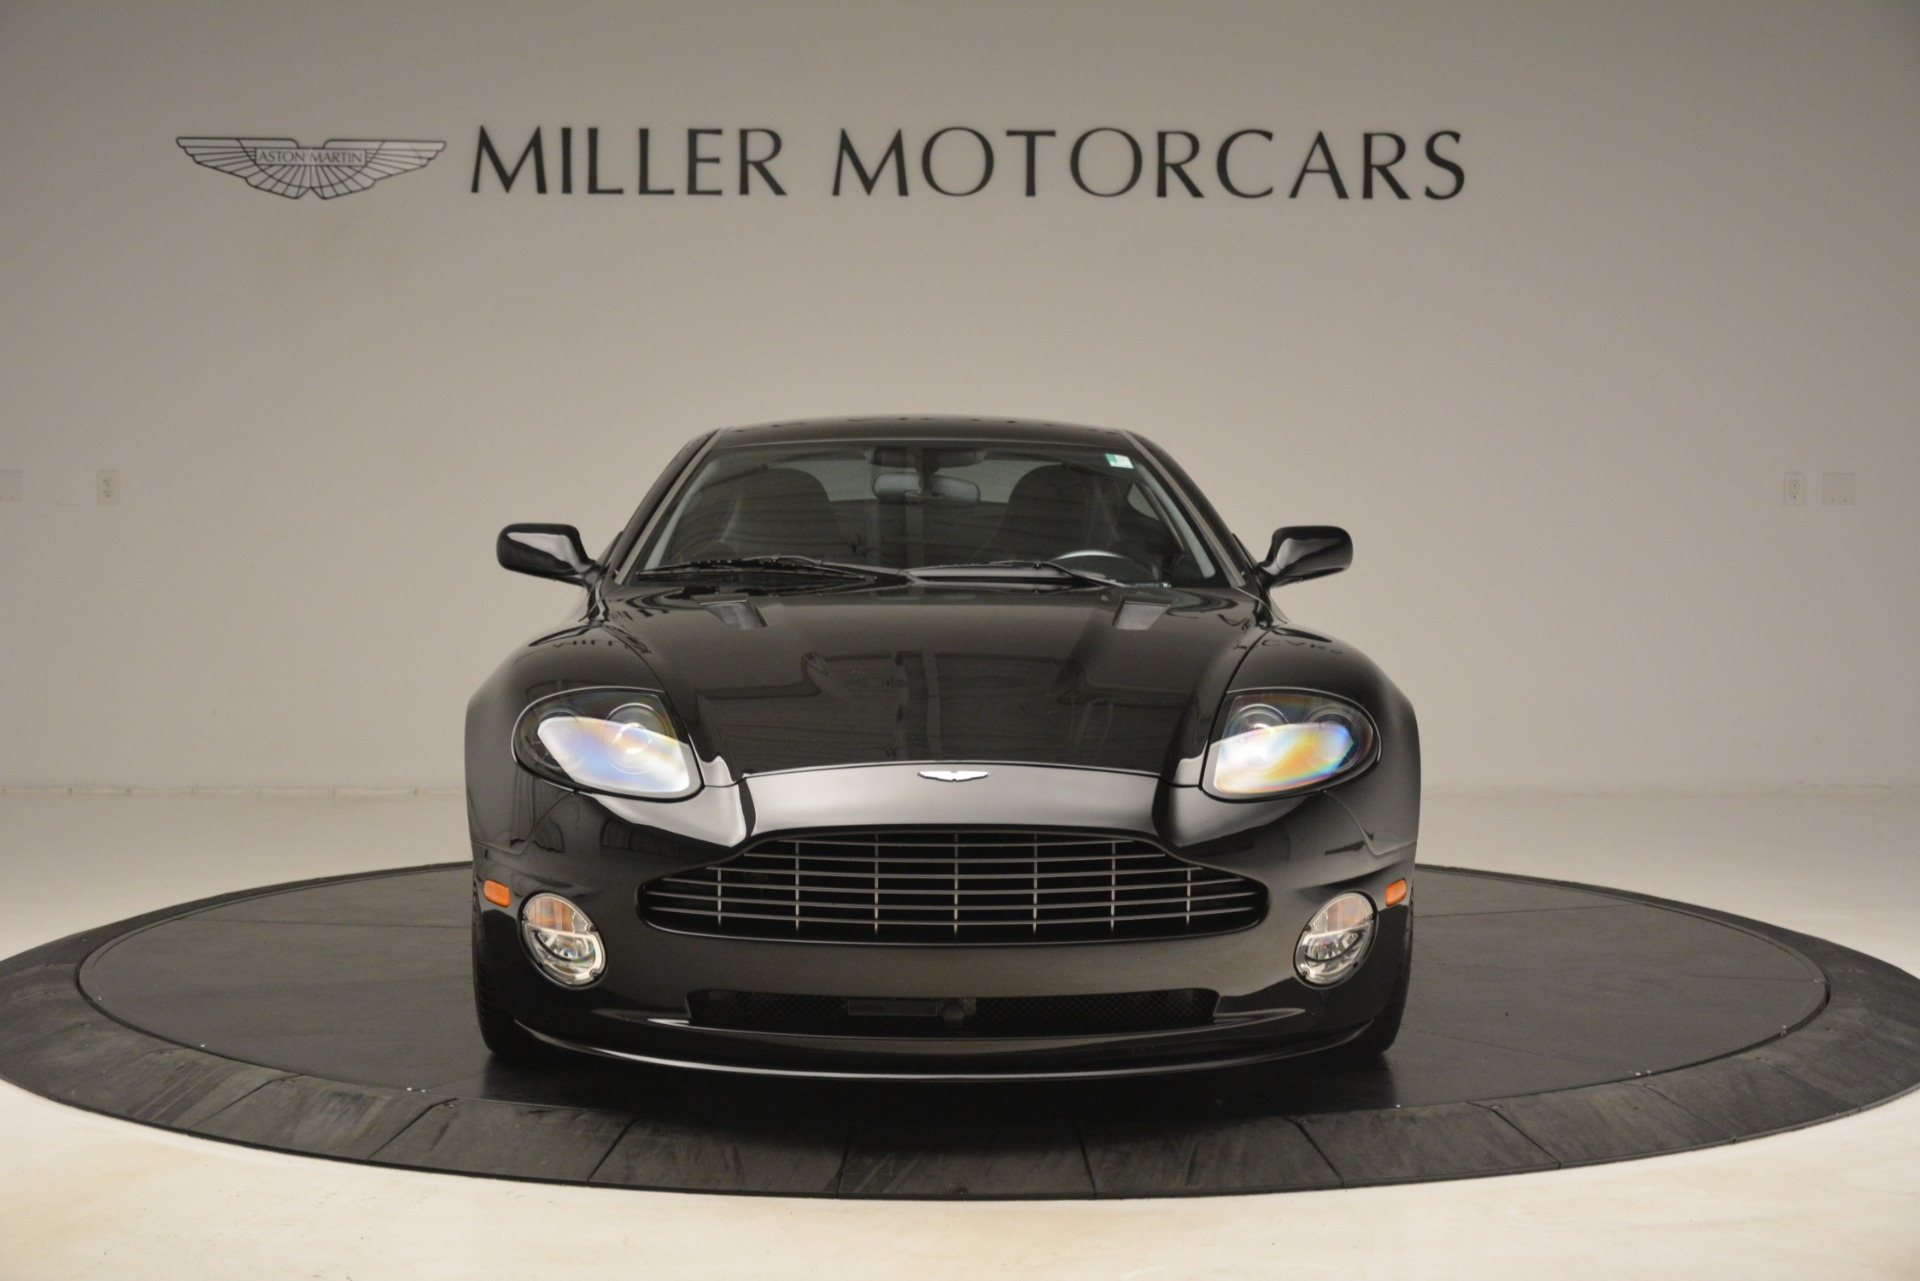 Used 2005 Aston Martin V12 Vanquish S For Sale In Westport, CT 3218_p12